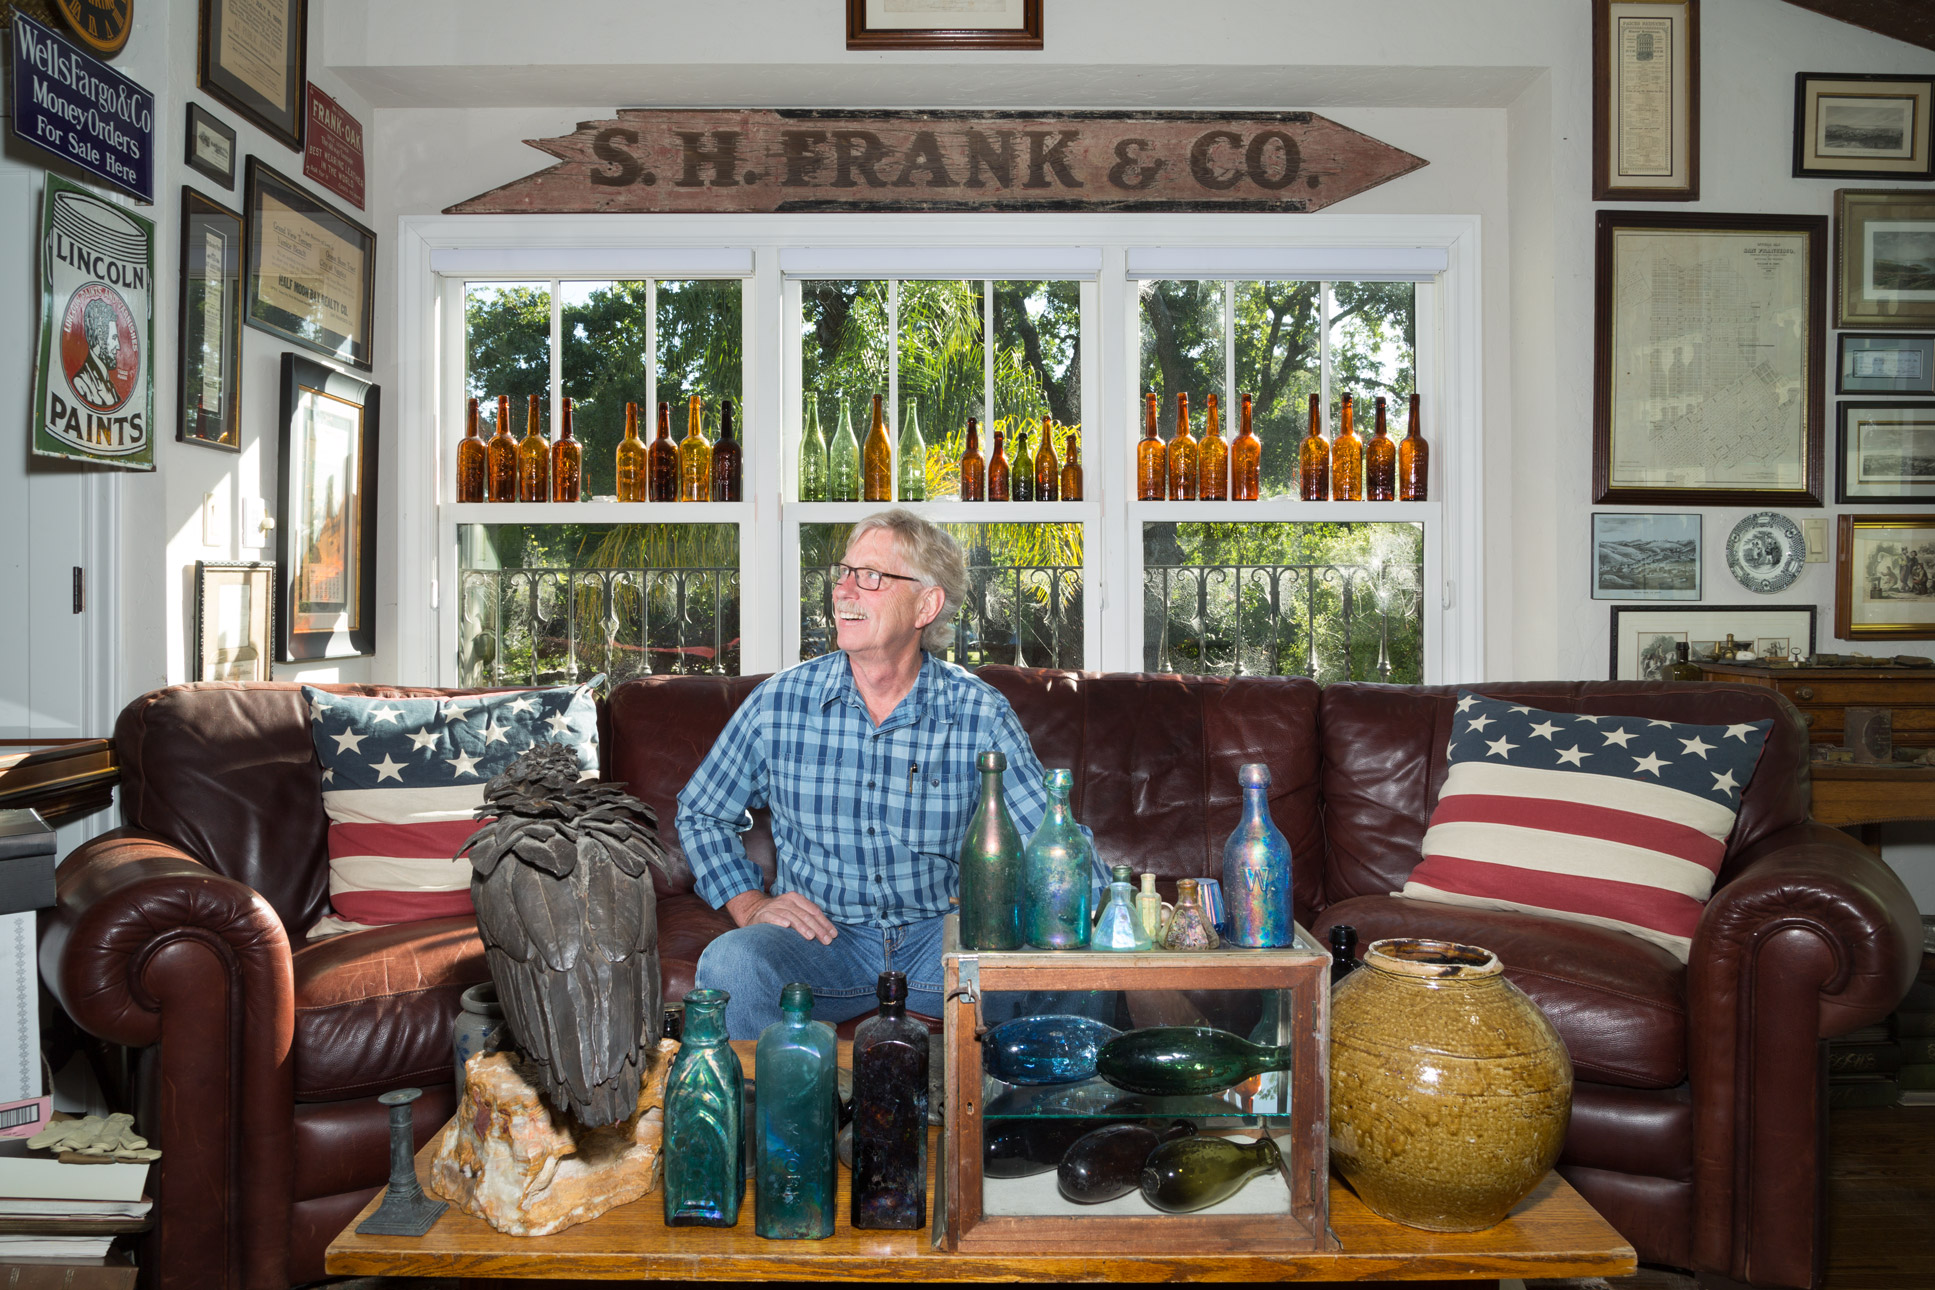 John Shroyer and Vintage Bottles